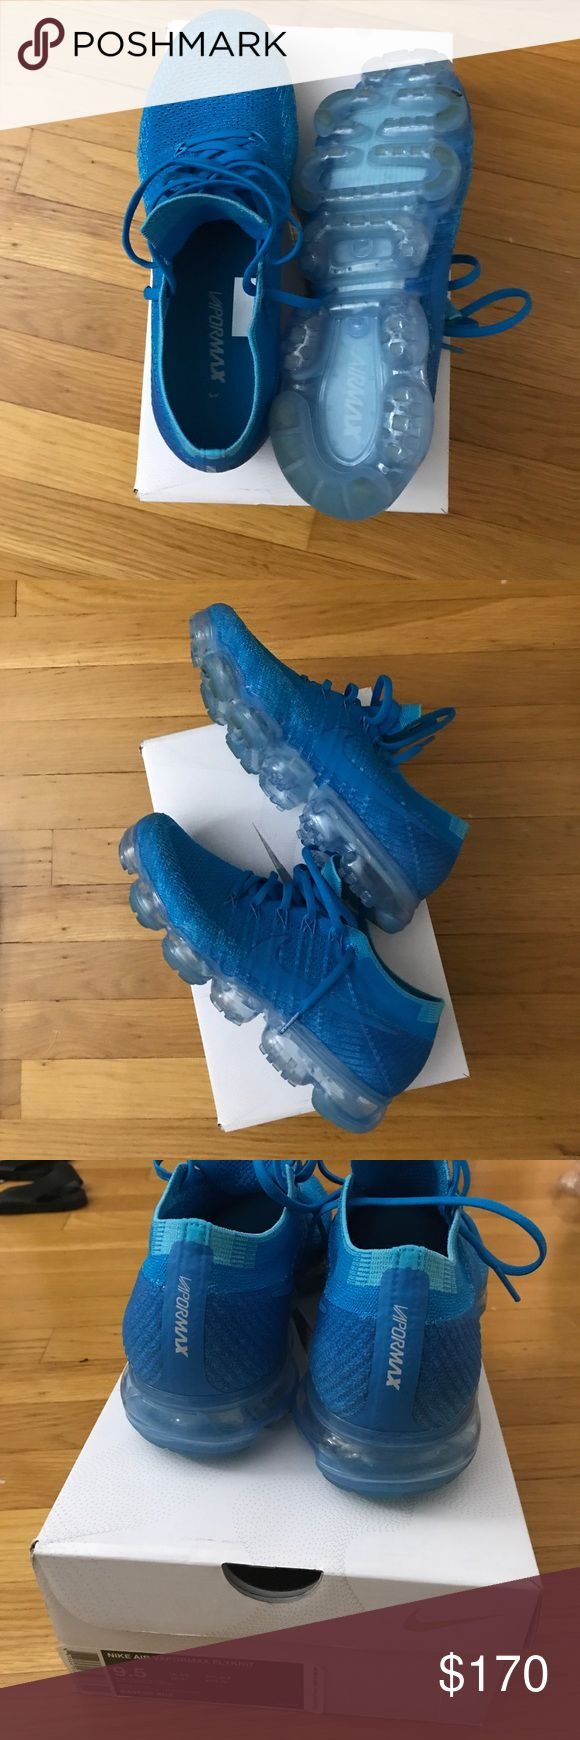 Nike vapor max sneakers Worn 2 times. Excellent condition Nike Shoes Sneakers